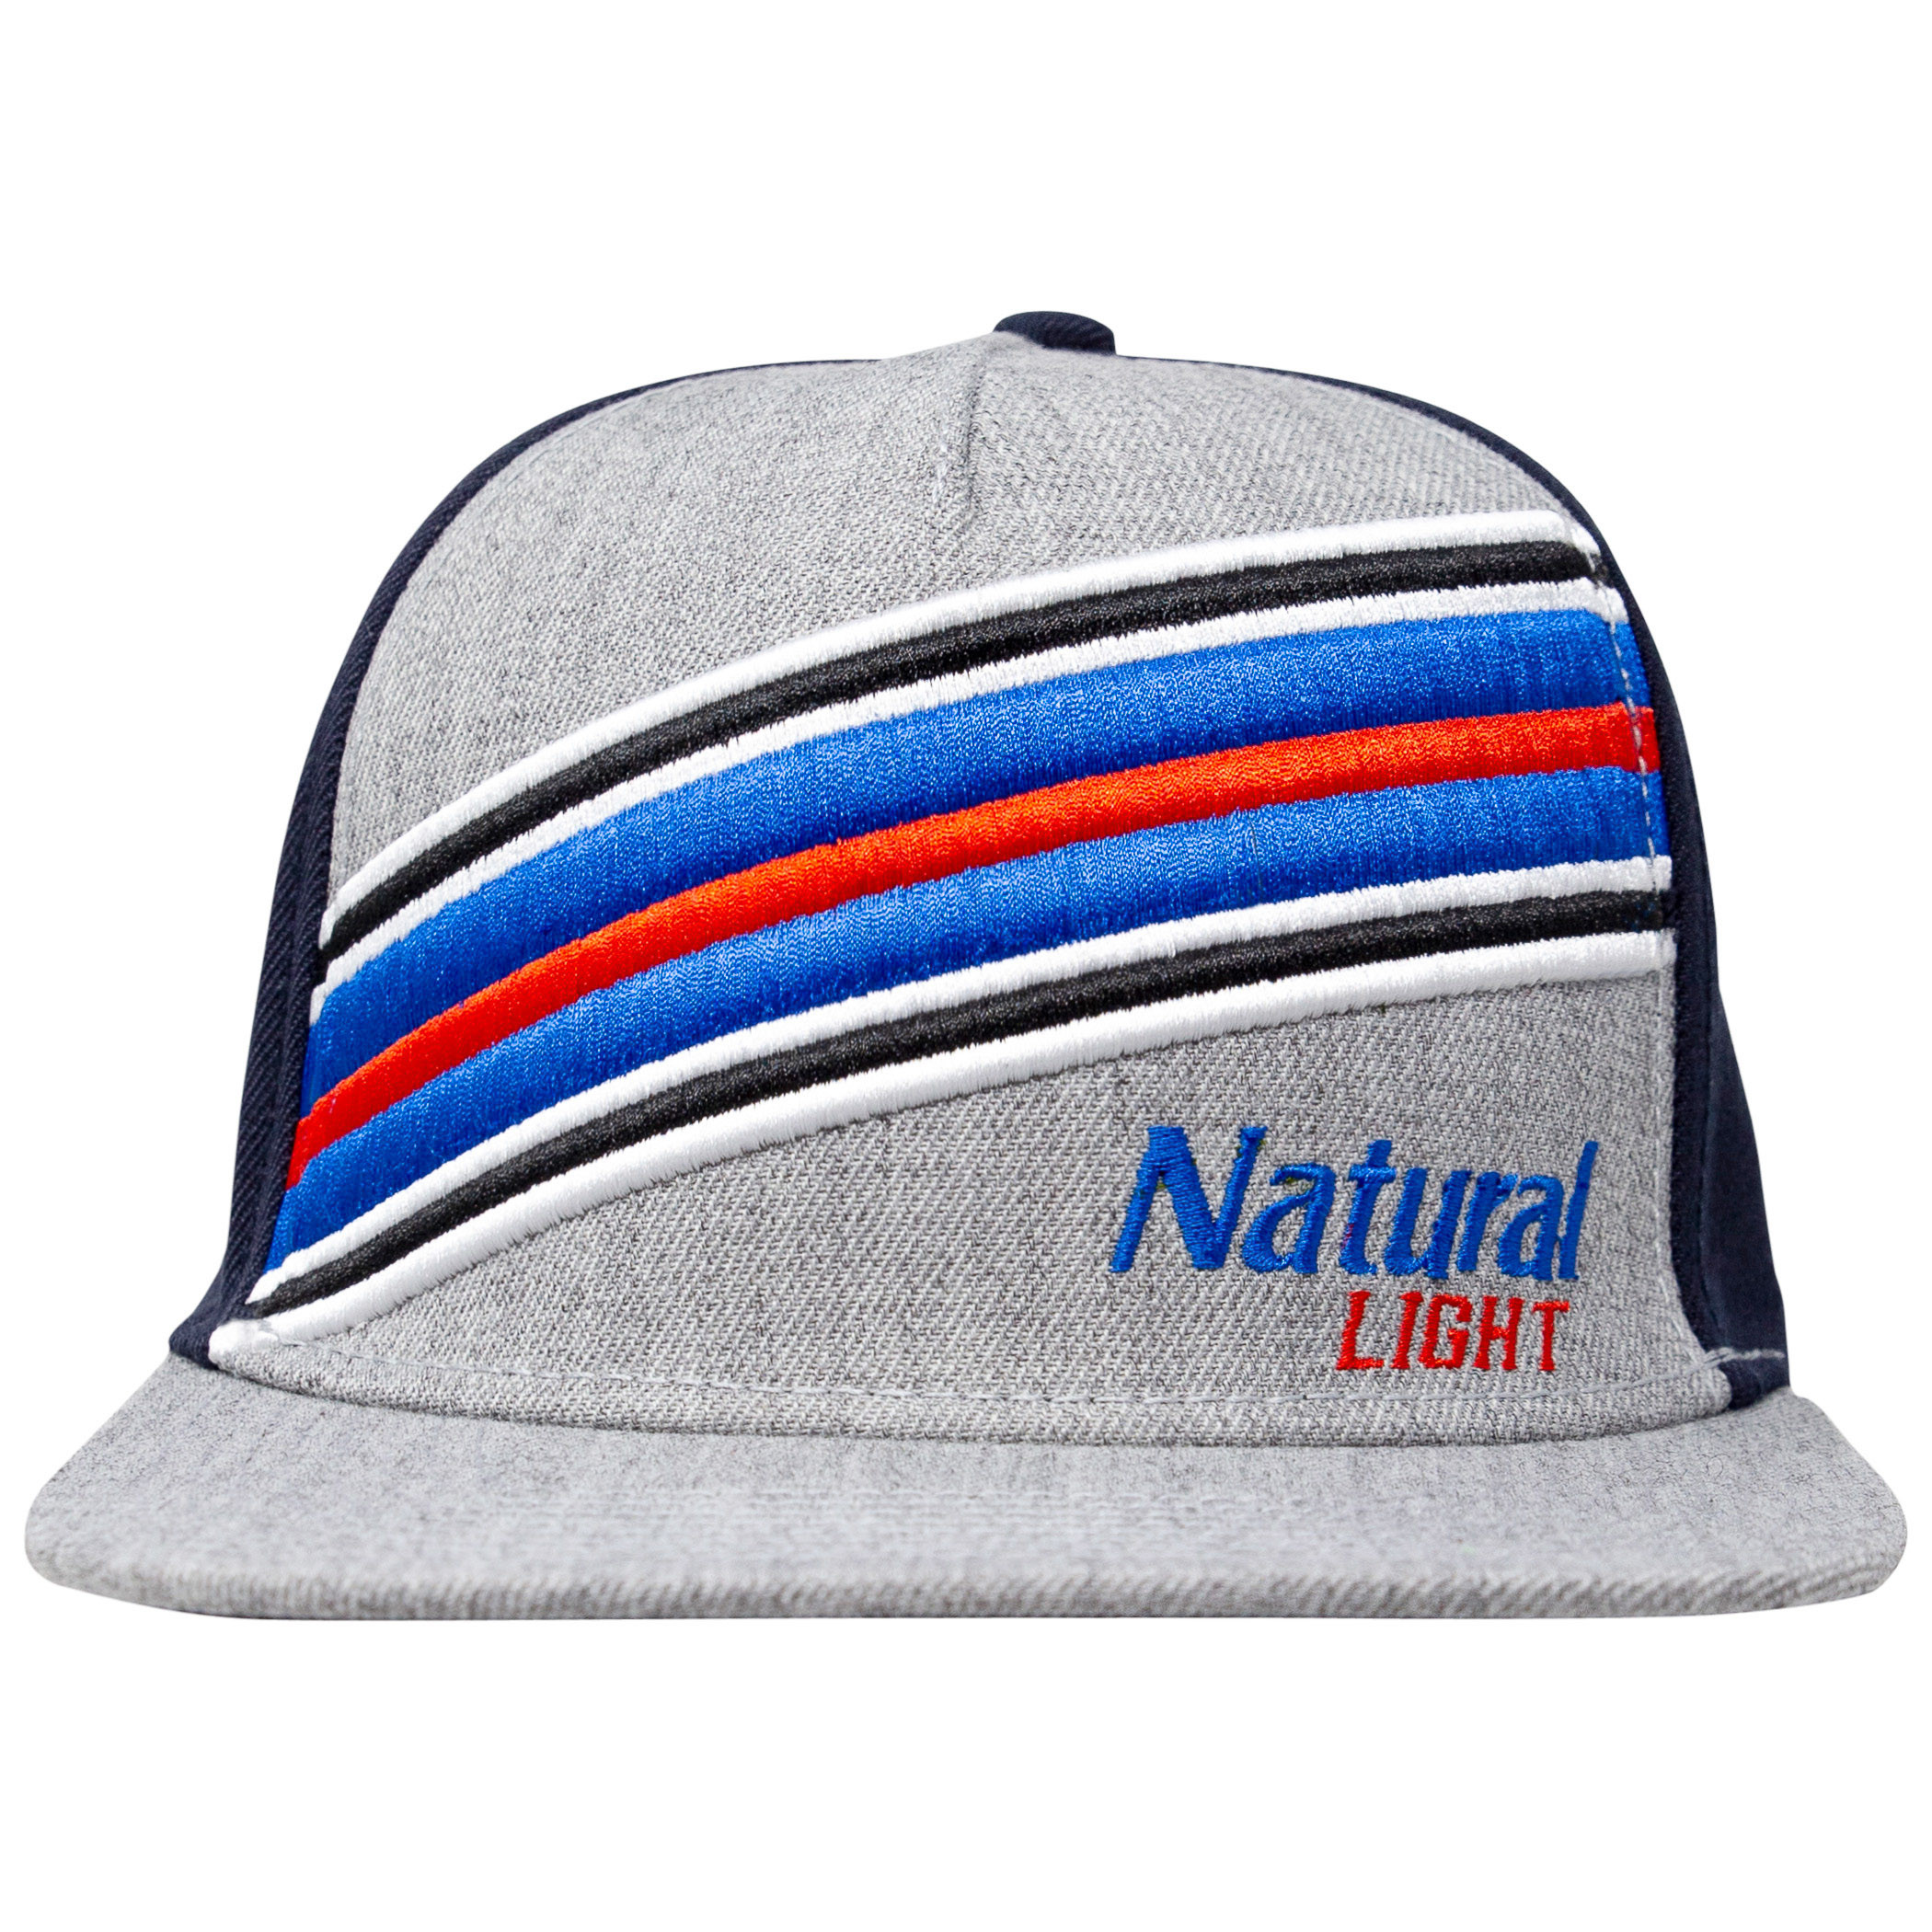 Natural Light Beer Striped Adjustable Snapback Hat